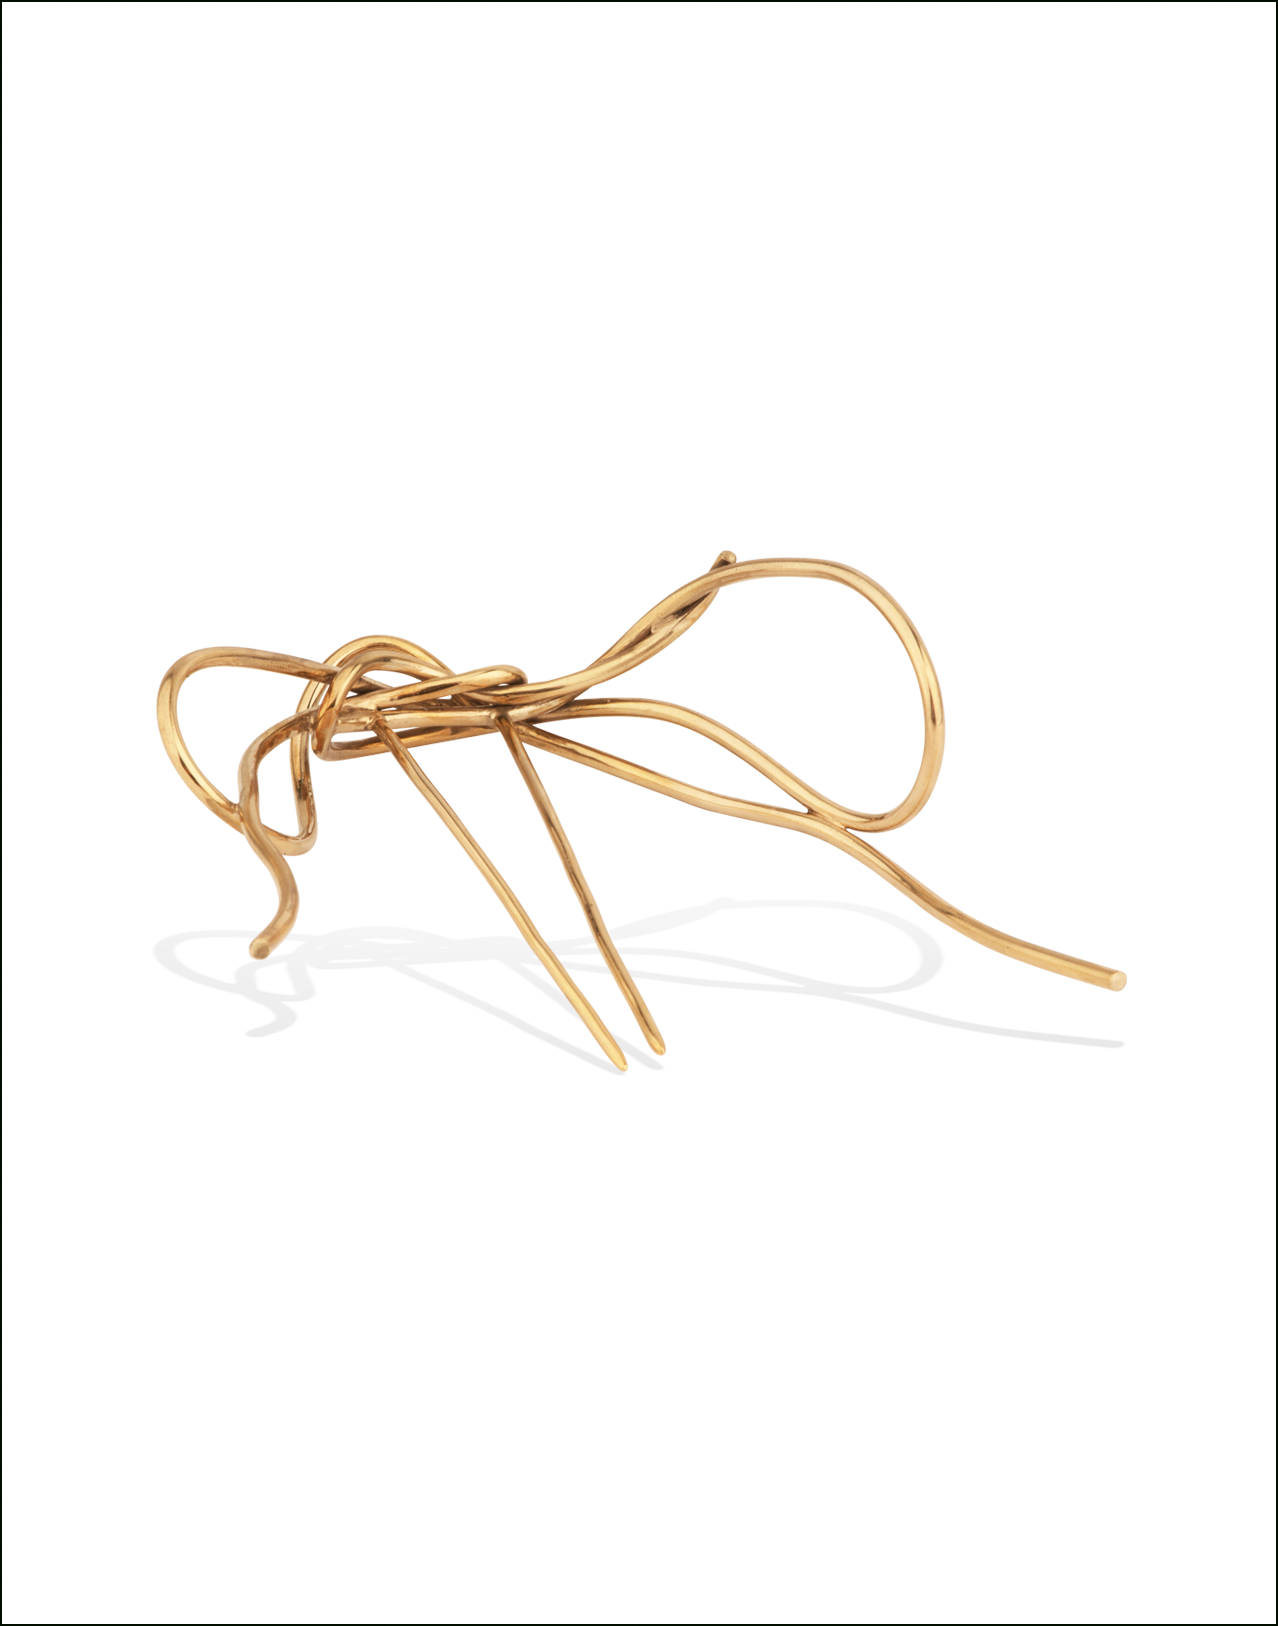 Completedworks-Hair-Pin-Gold-Vermeil-The-March-of-Progress-1-1.png